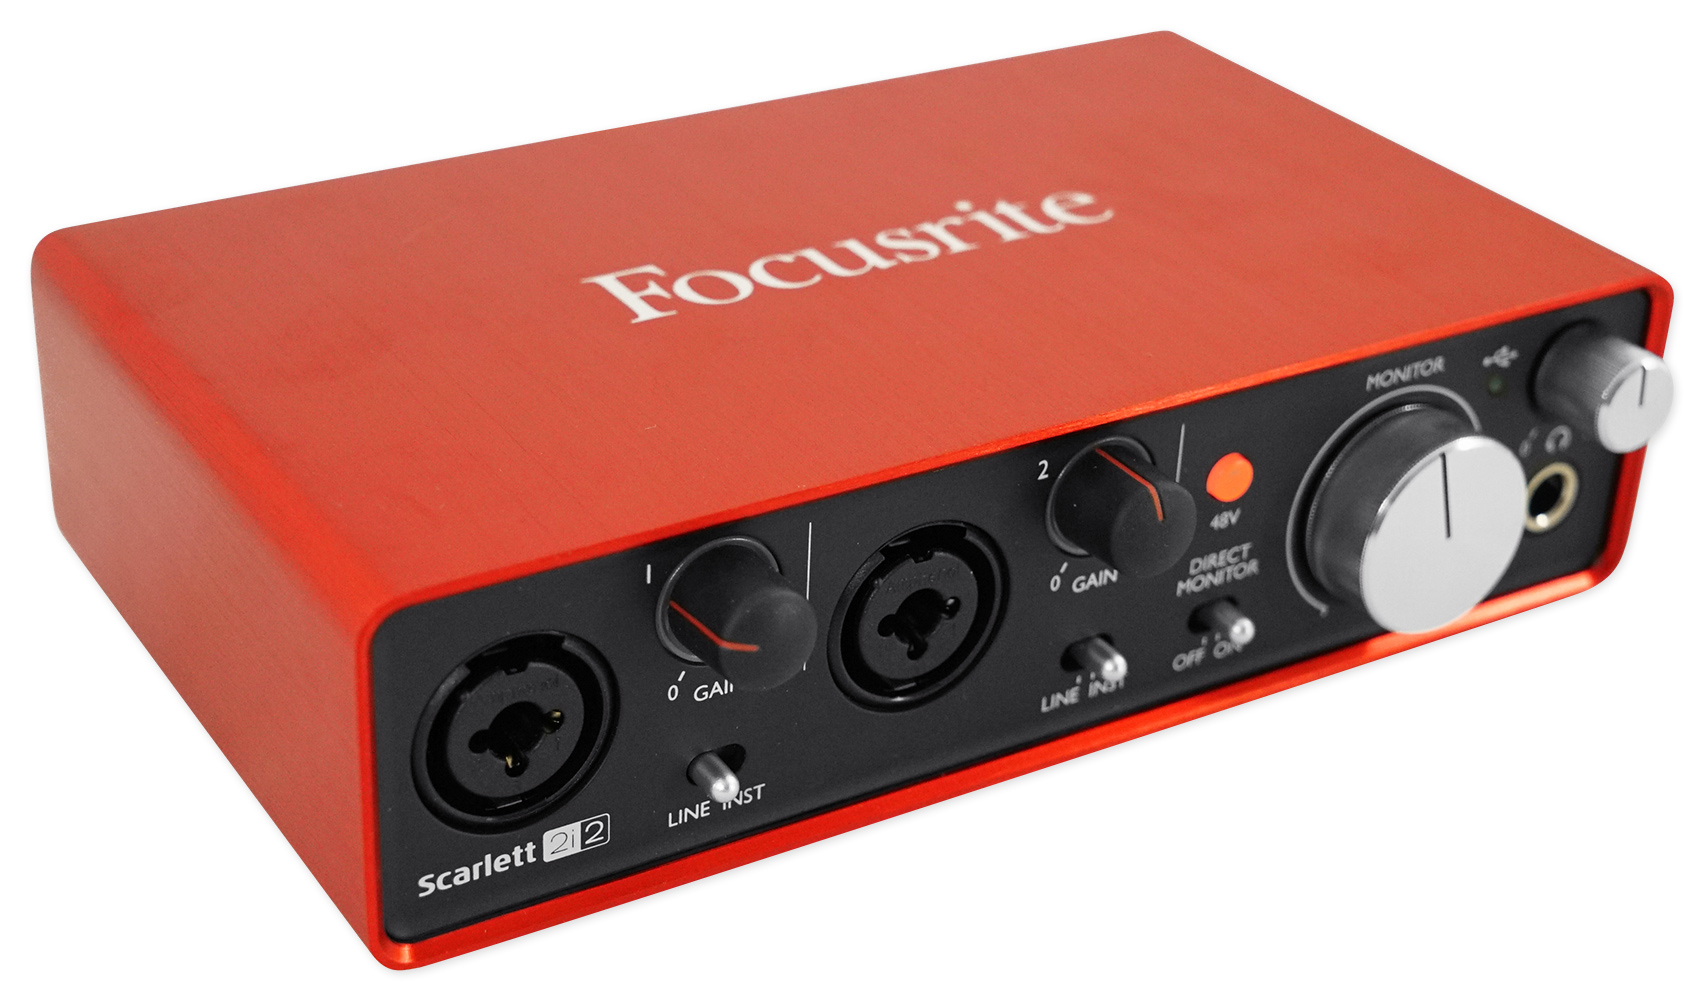 Scarlett 2i2 Details About Focusrite Scarlett 2i2 2nd Gen 192khz Usb 2 Audio Interface W Pro Tools First